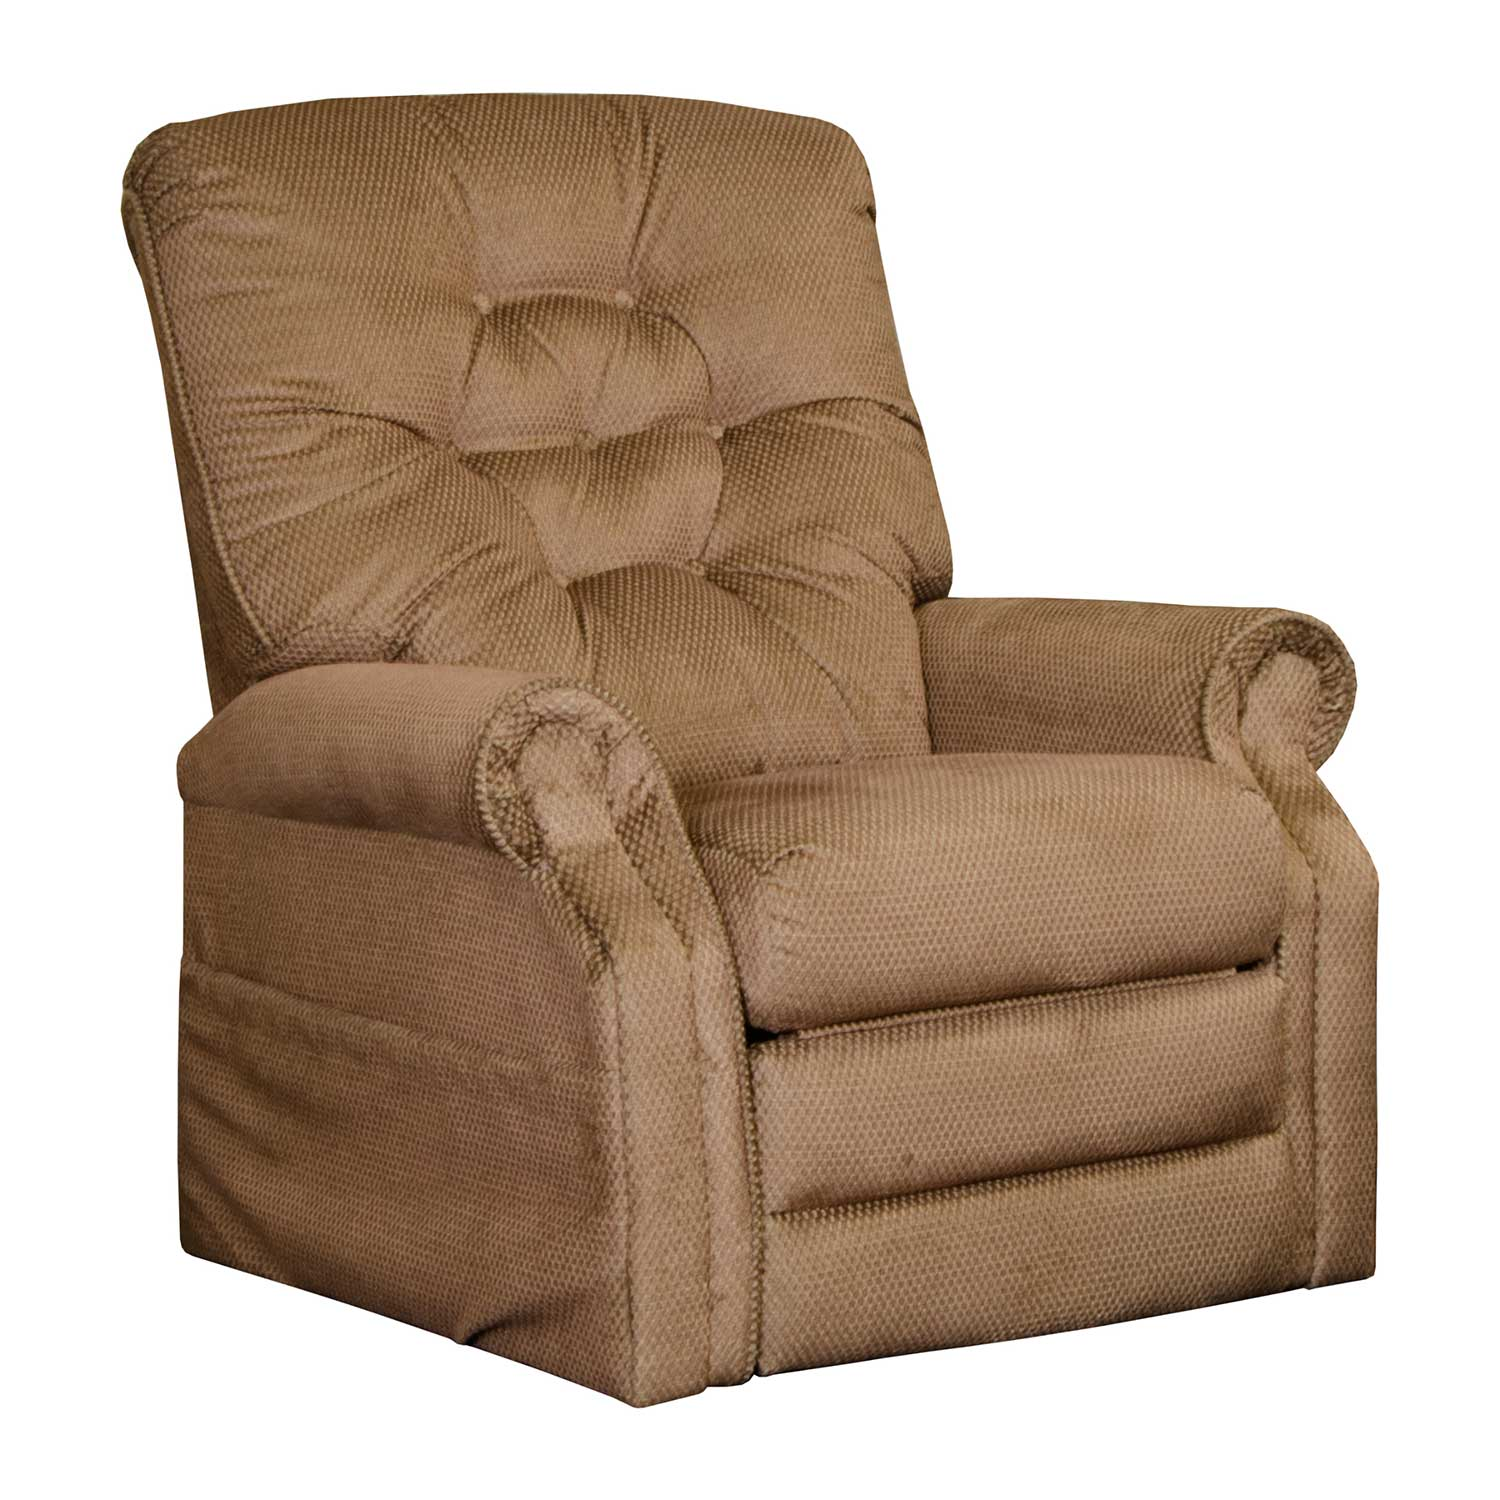 CatNapper Patriot Power Lift Recliner Chair - Brown Sugar